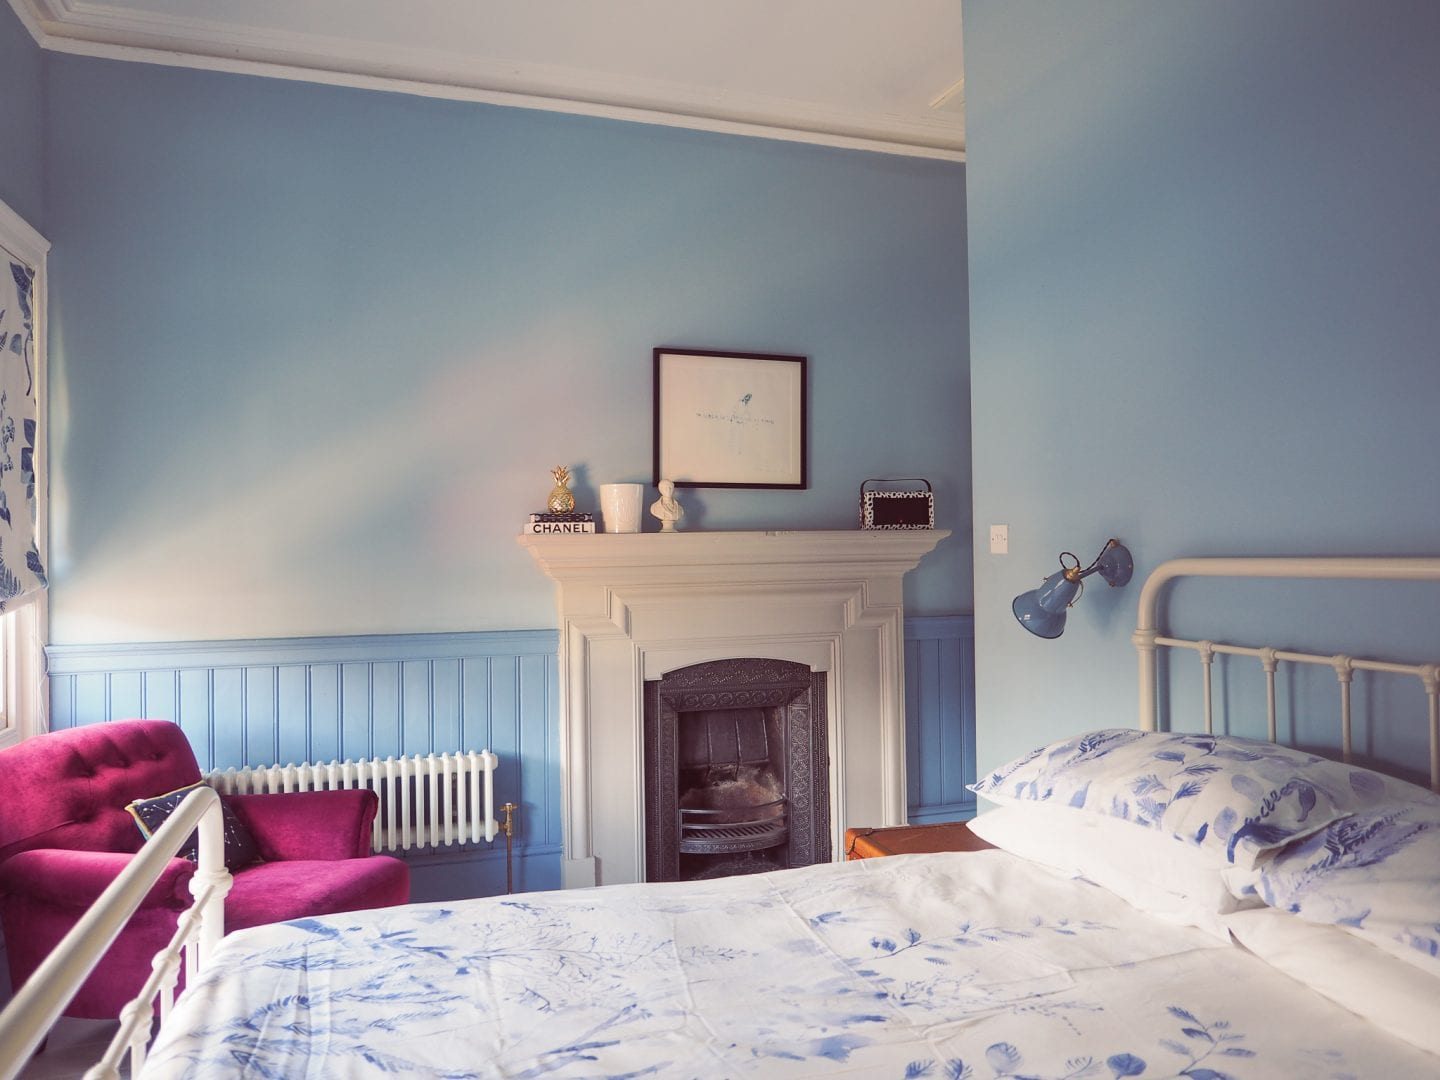 blue-seaside-bedroom-christy-bedlinen-anglepoise-lights